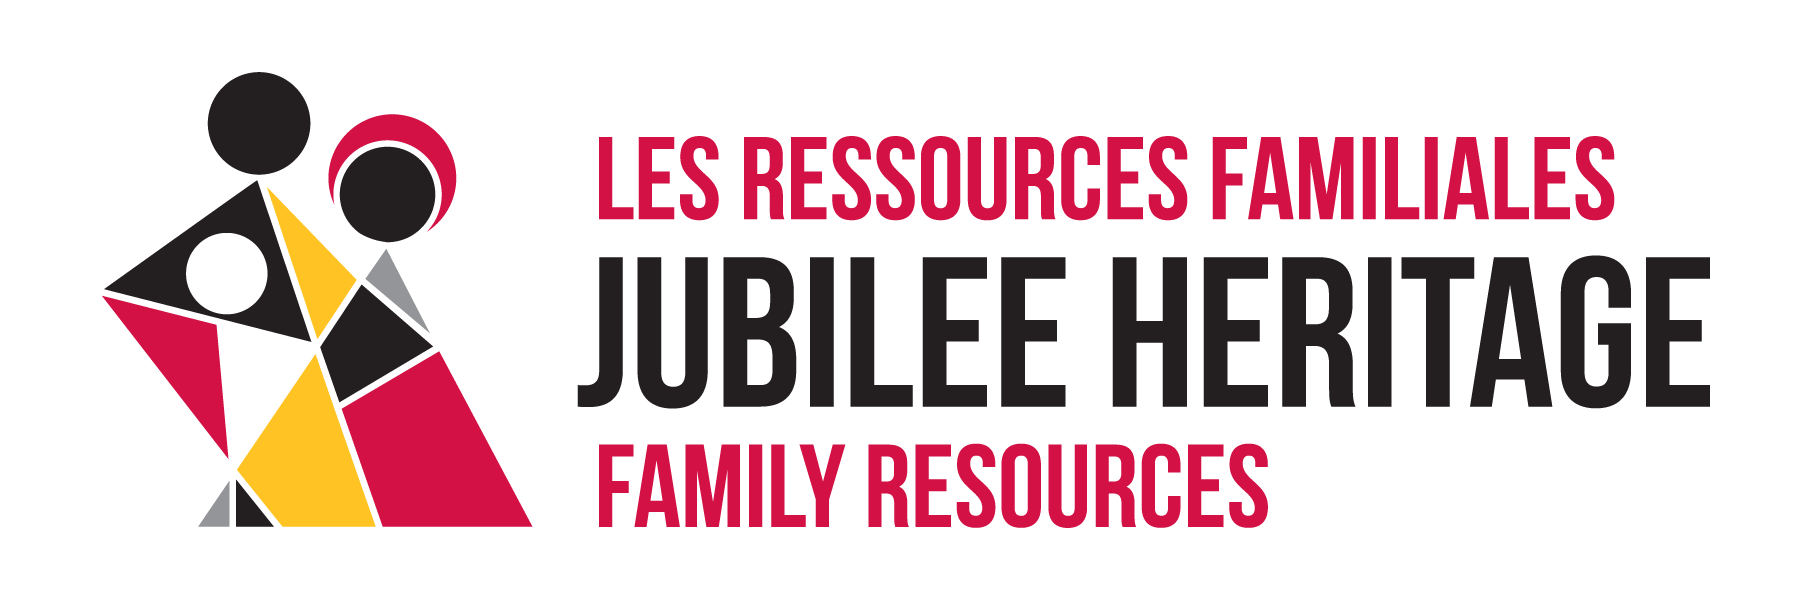 Jubilee Heritage Family Resources